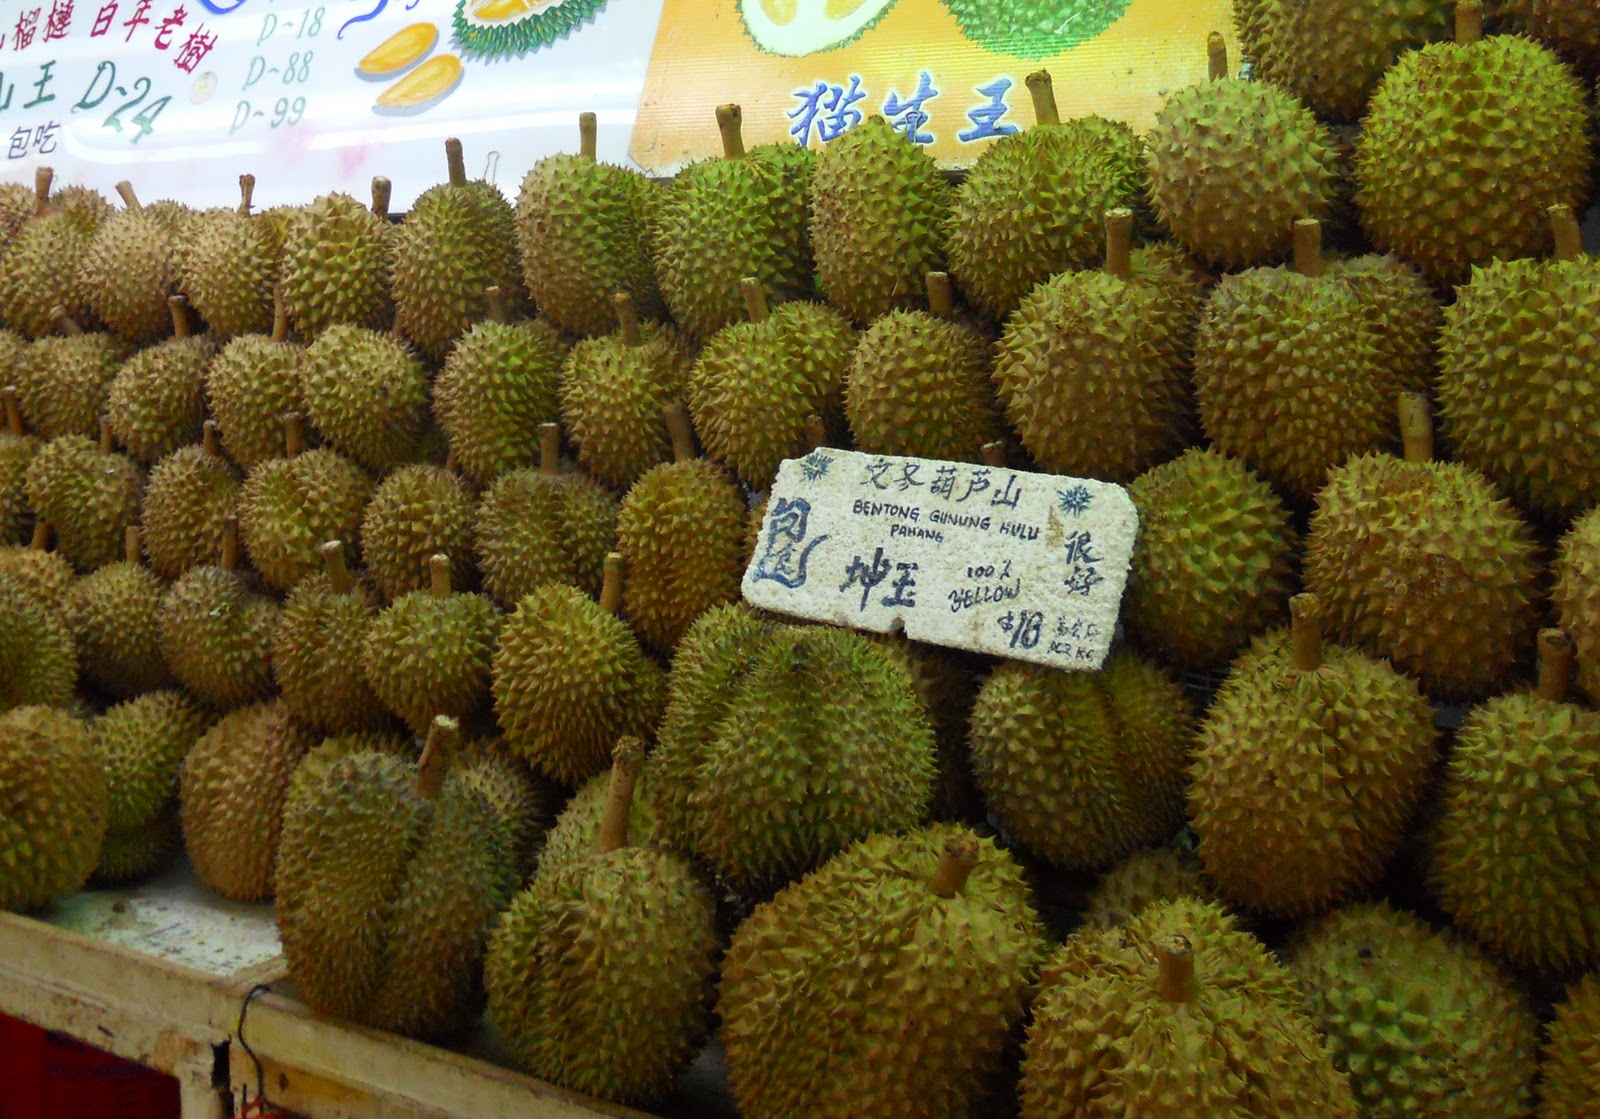 Pinch of cinnamon spicy stories and recipes from around the world must try singapore fruits - Five of the most expensive fruits in the world ...